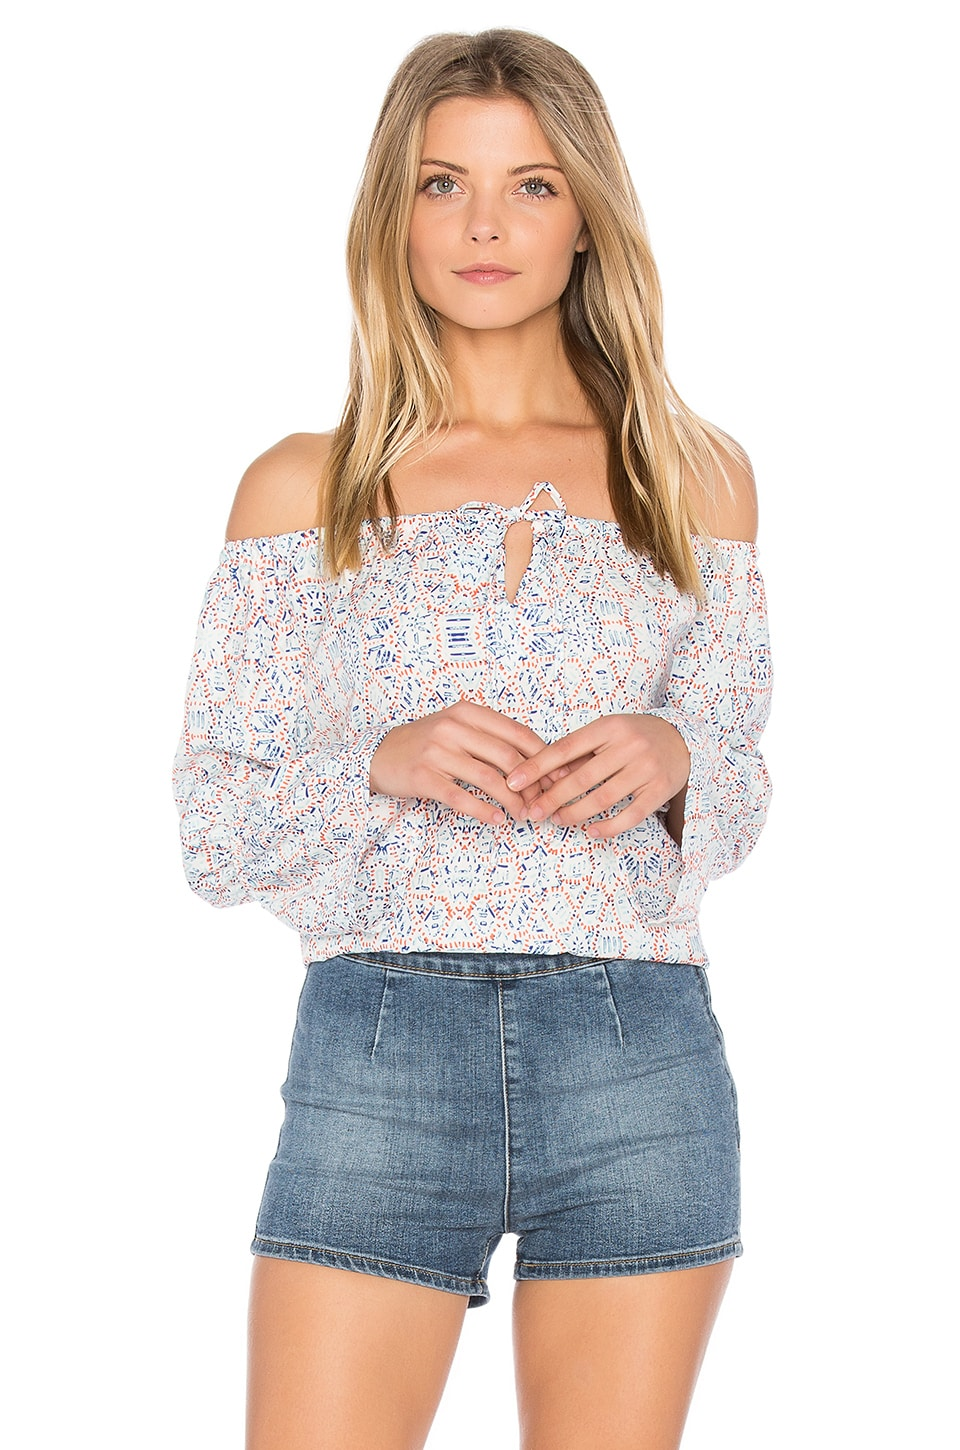 Freya Top by cupcakes and cashmere